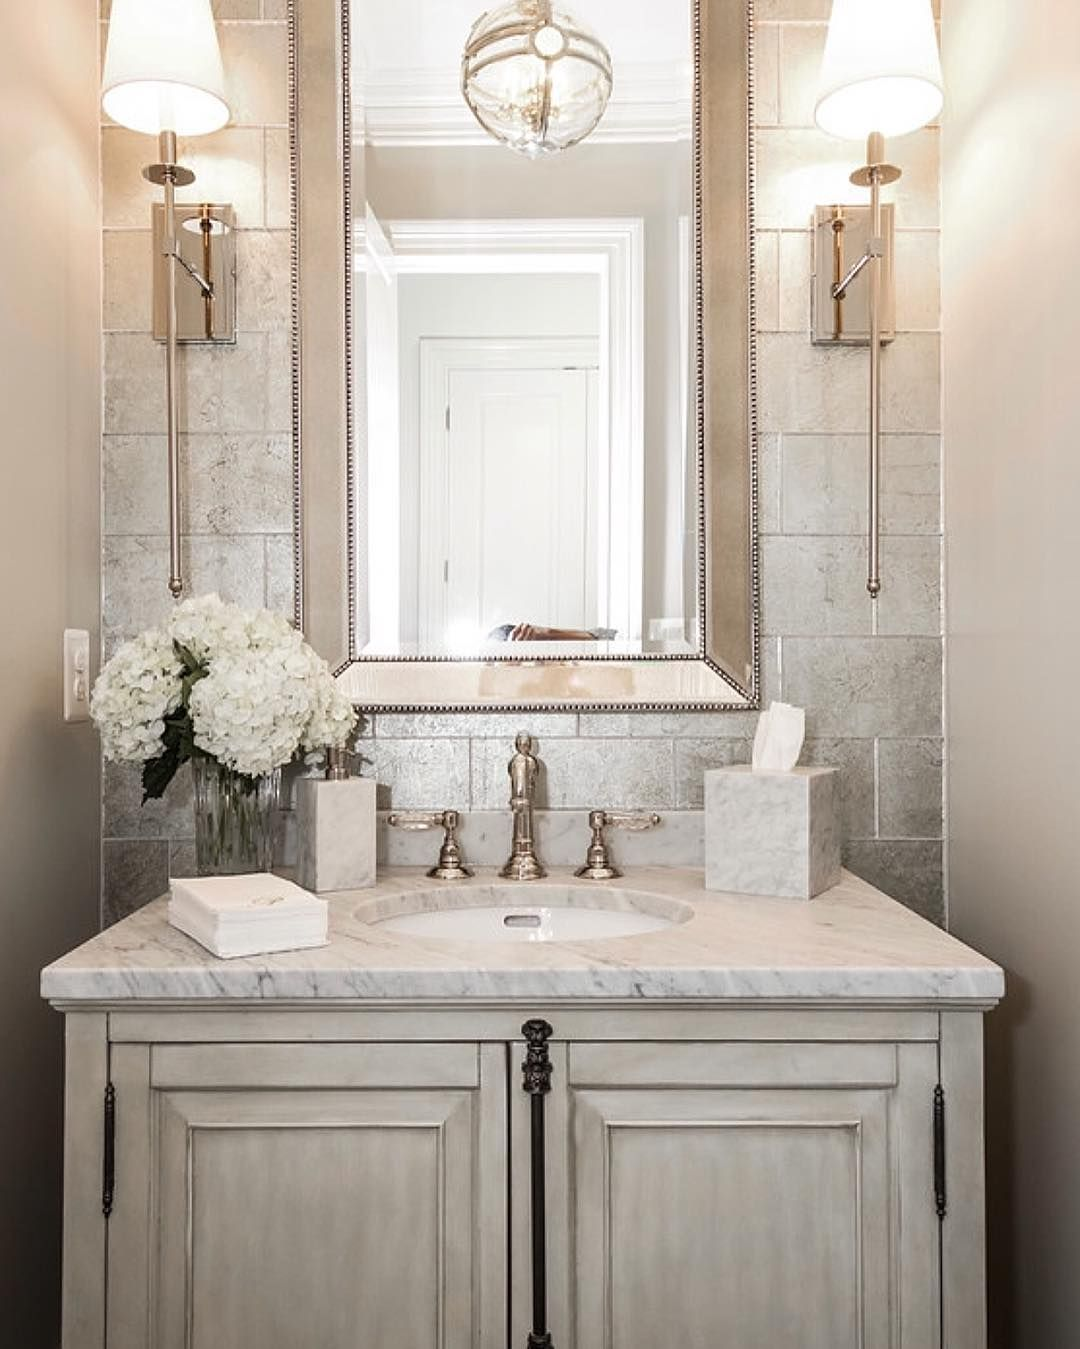 Such an elegant powder room by castlwood custom builders for Bathroom powder room designs